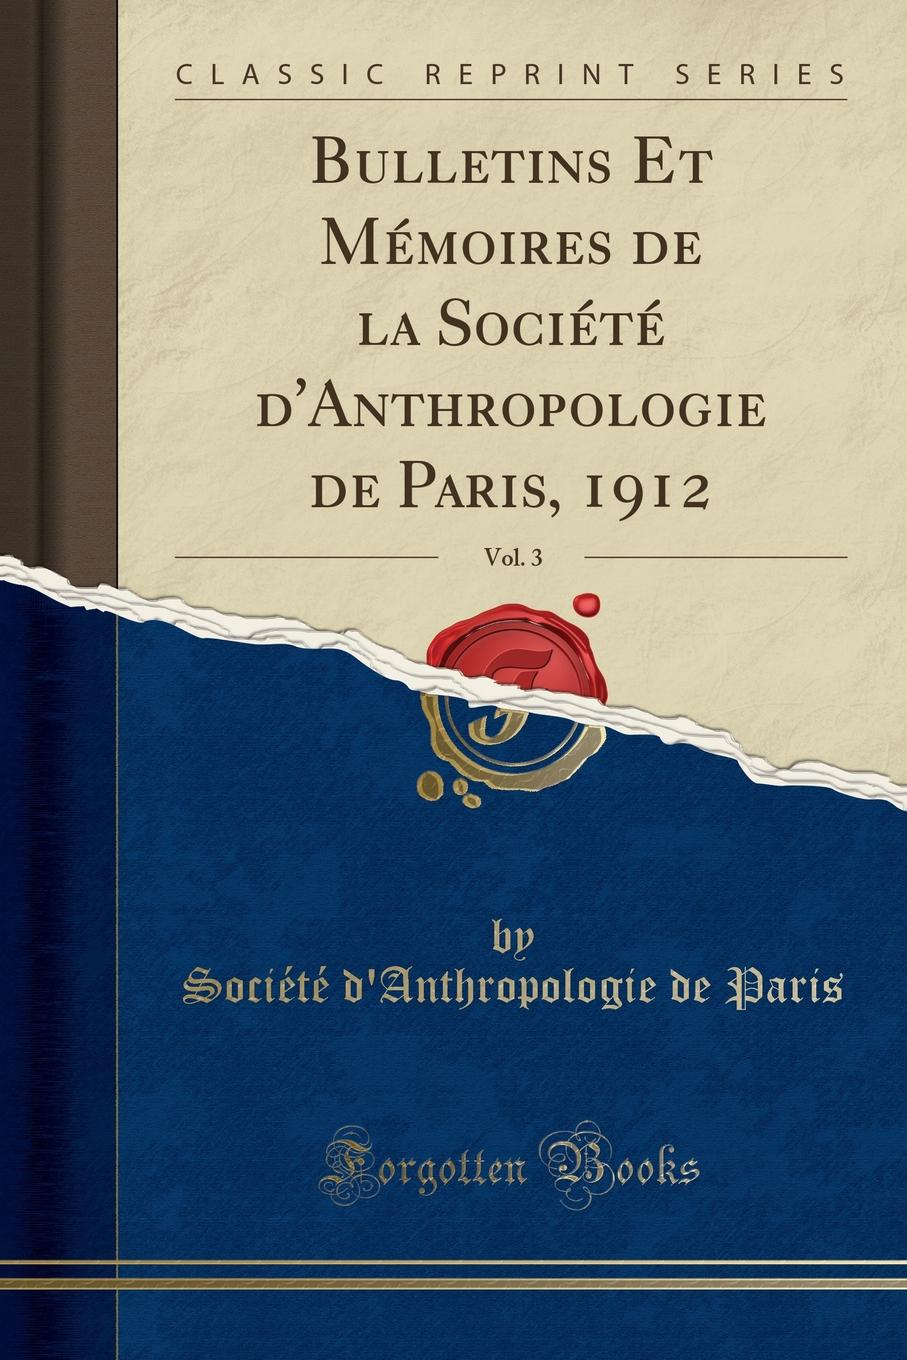 Société d'Anthropologie de Paris Bulletins Et Memoires de la Societe d.Anthropologie de Paris, 1912, Vol. 3 (Classic Reprint)